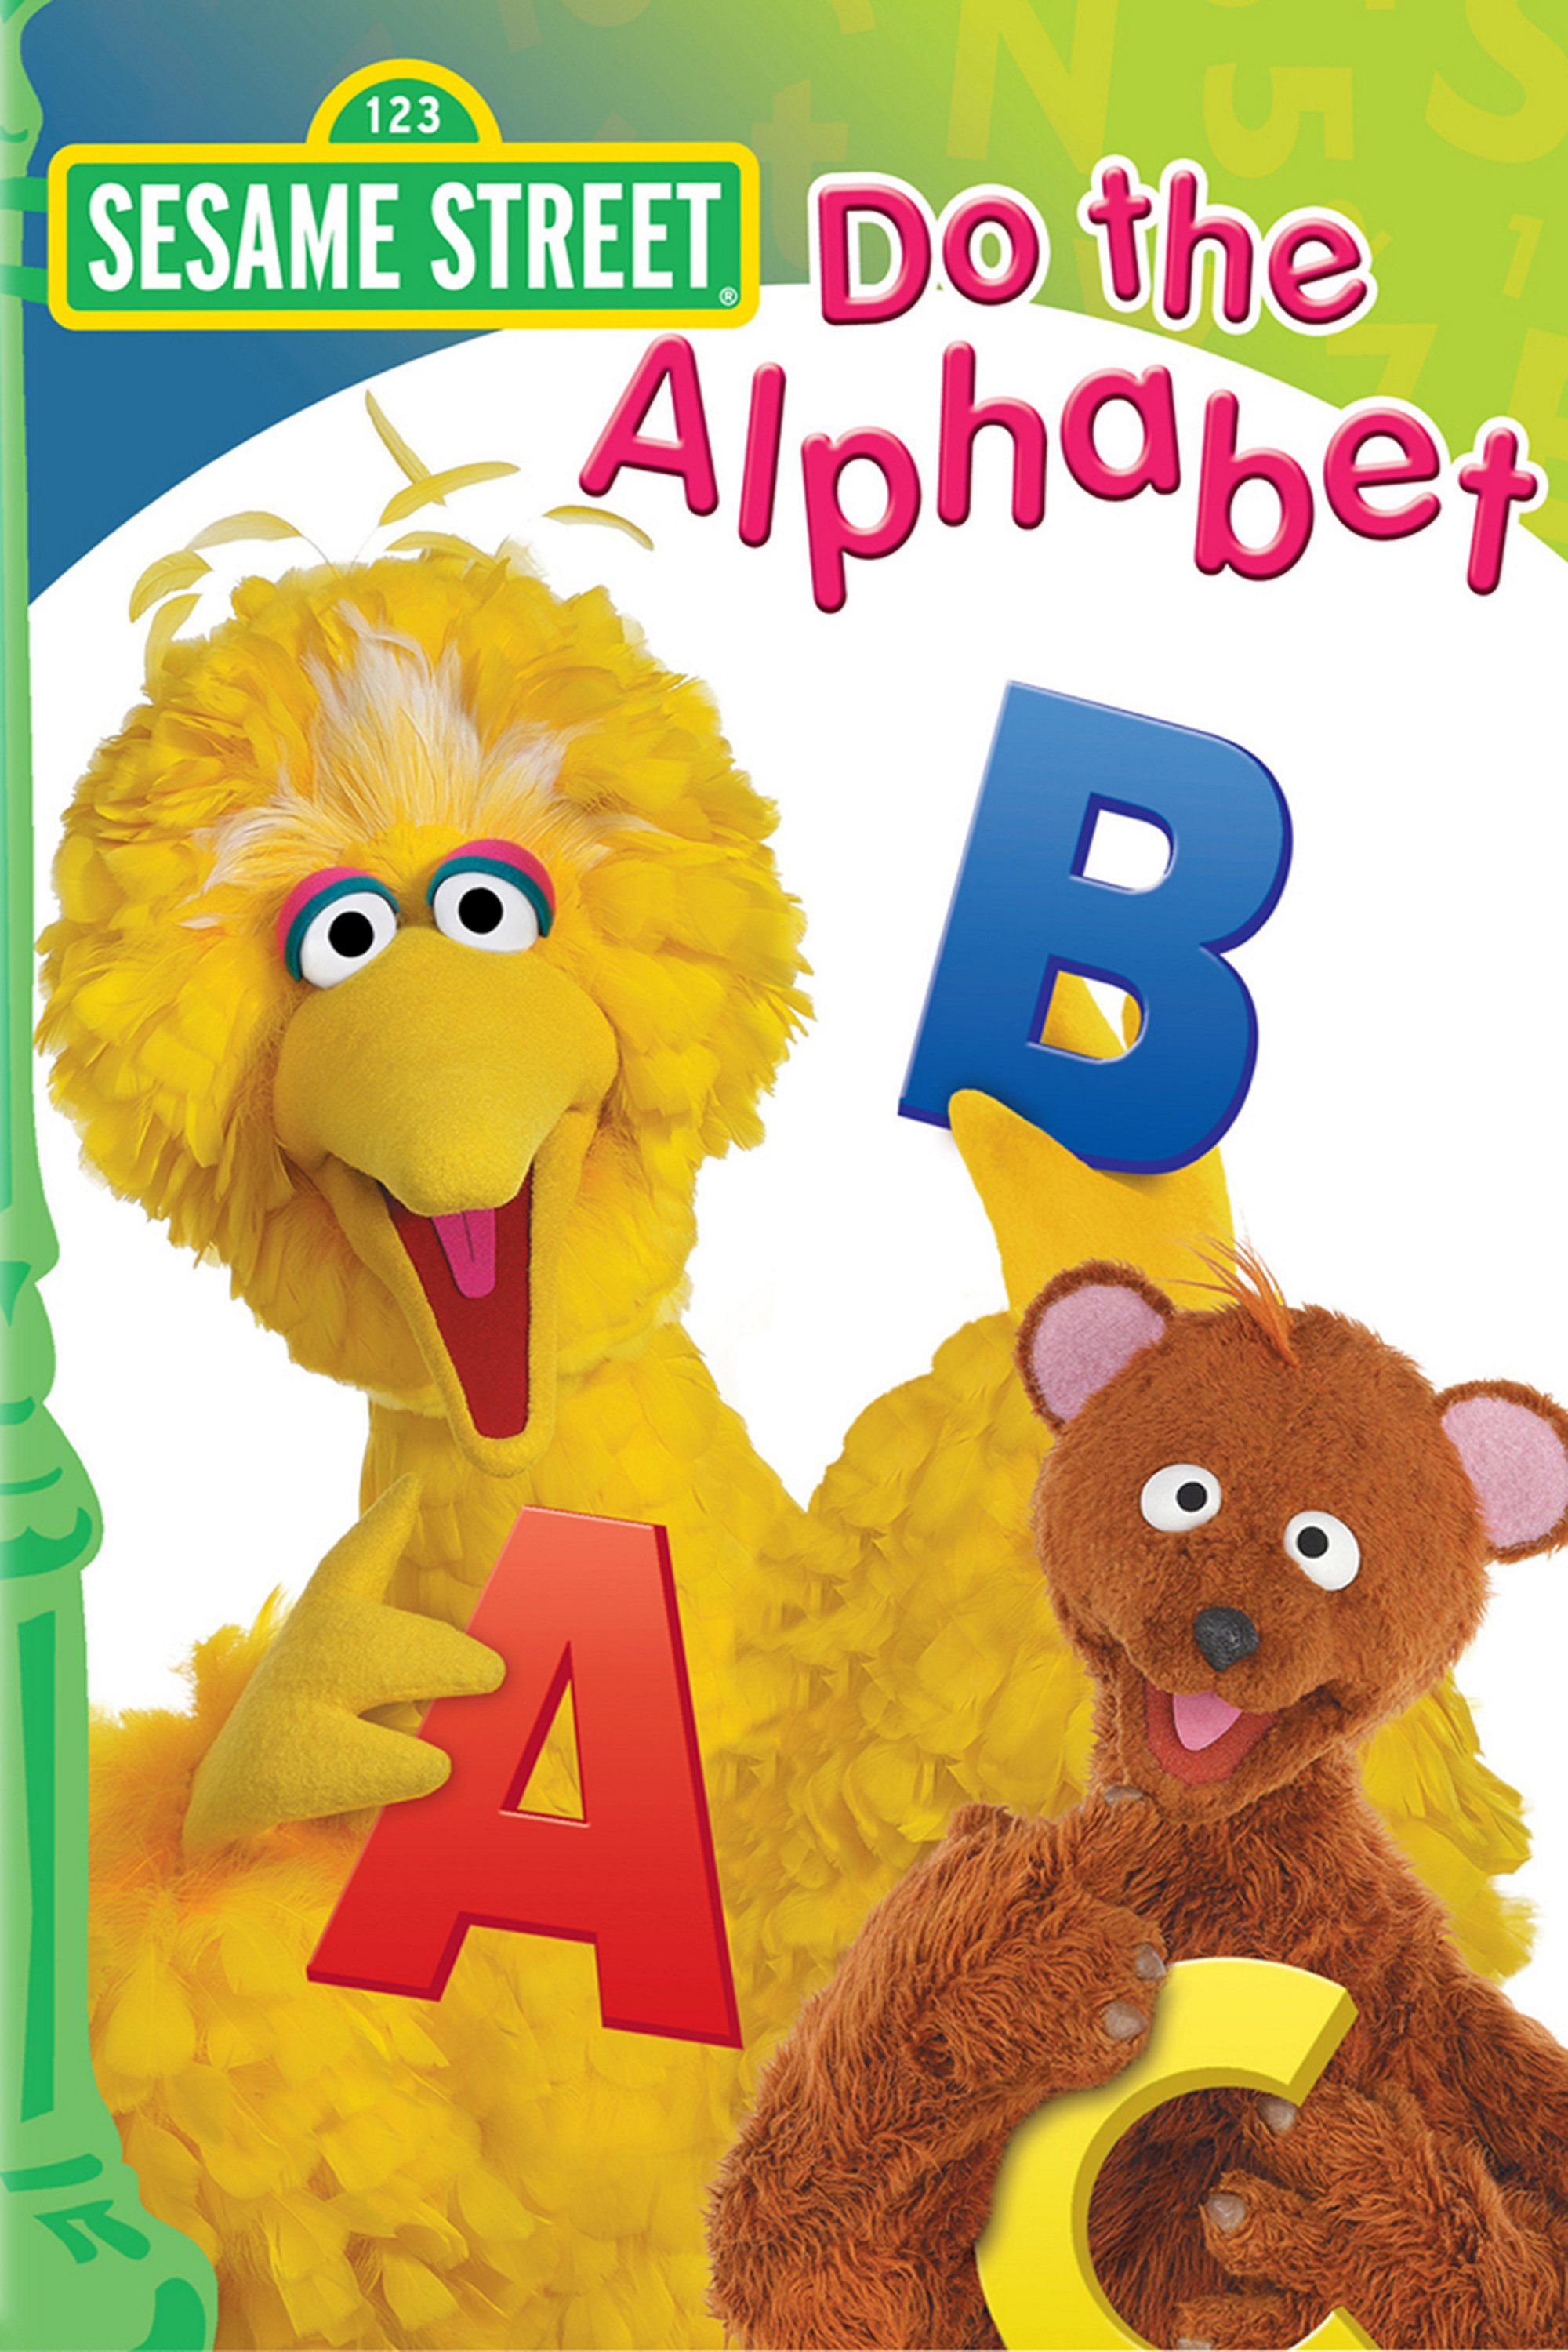 Sesame Street: Do the Alphabet | Buy, Rent or Watch on FandangoNOW